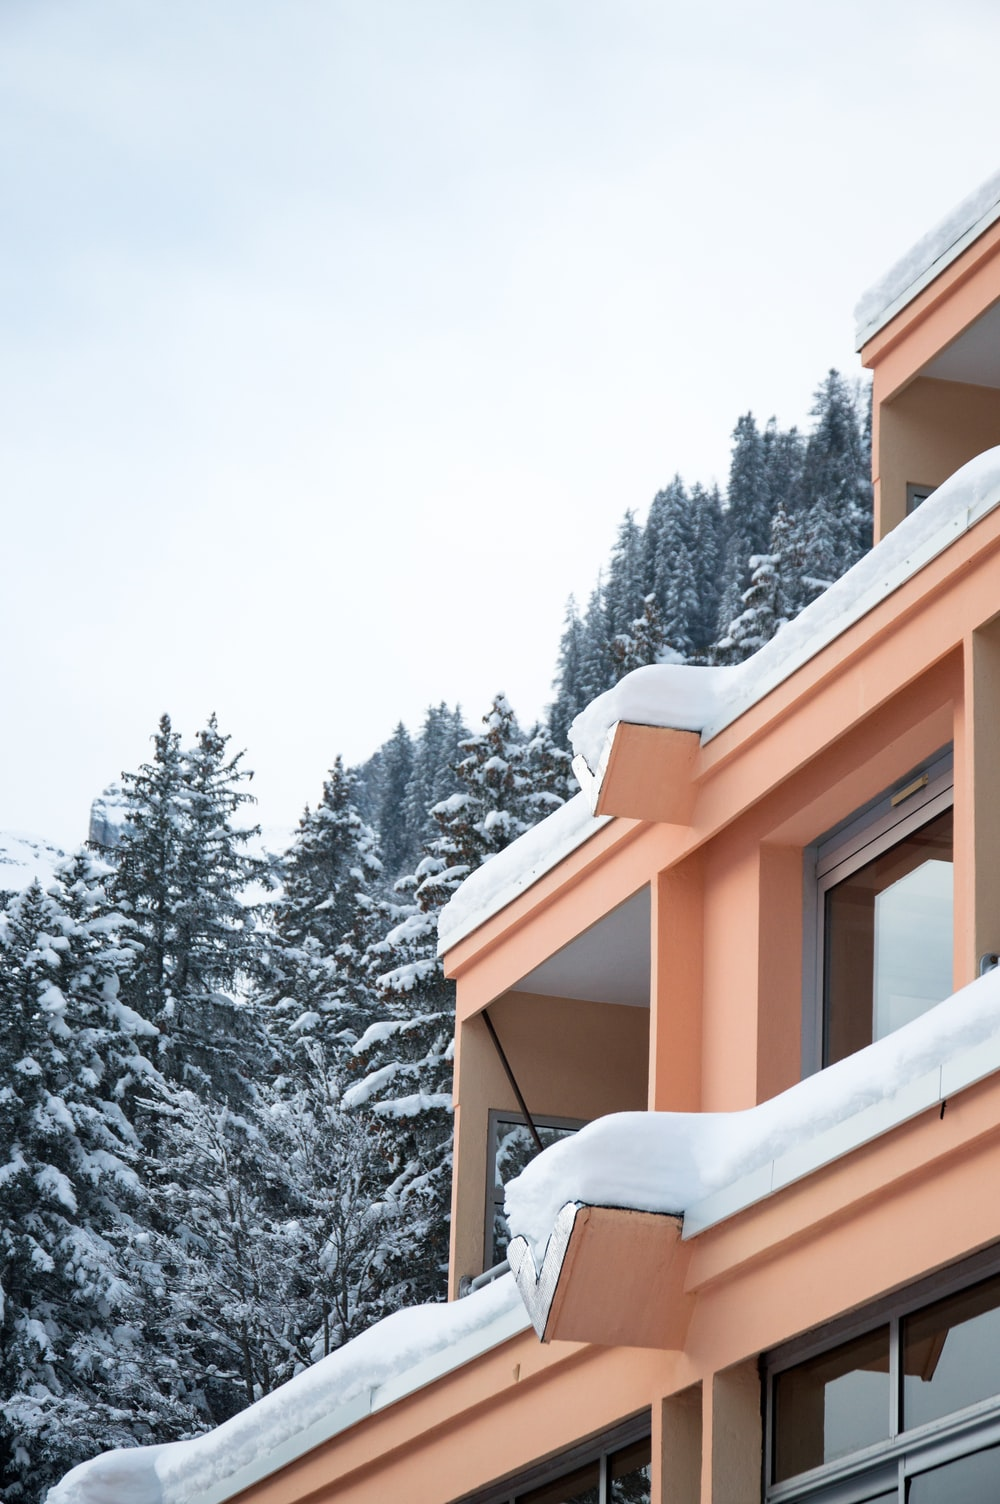 brown concrete building covered with snow